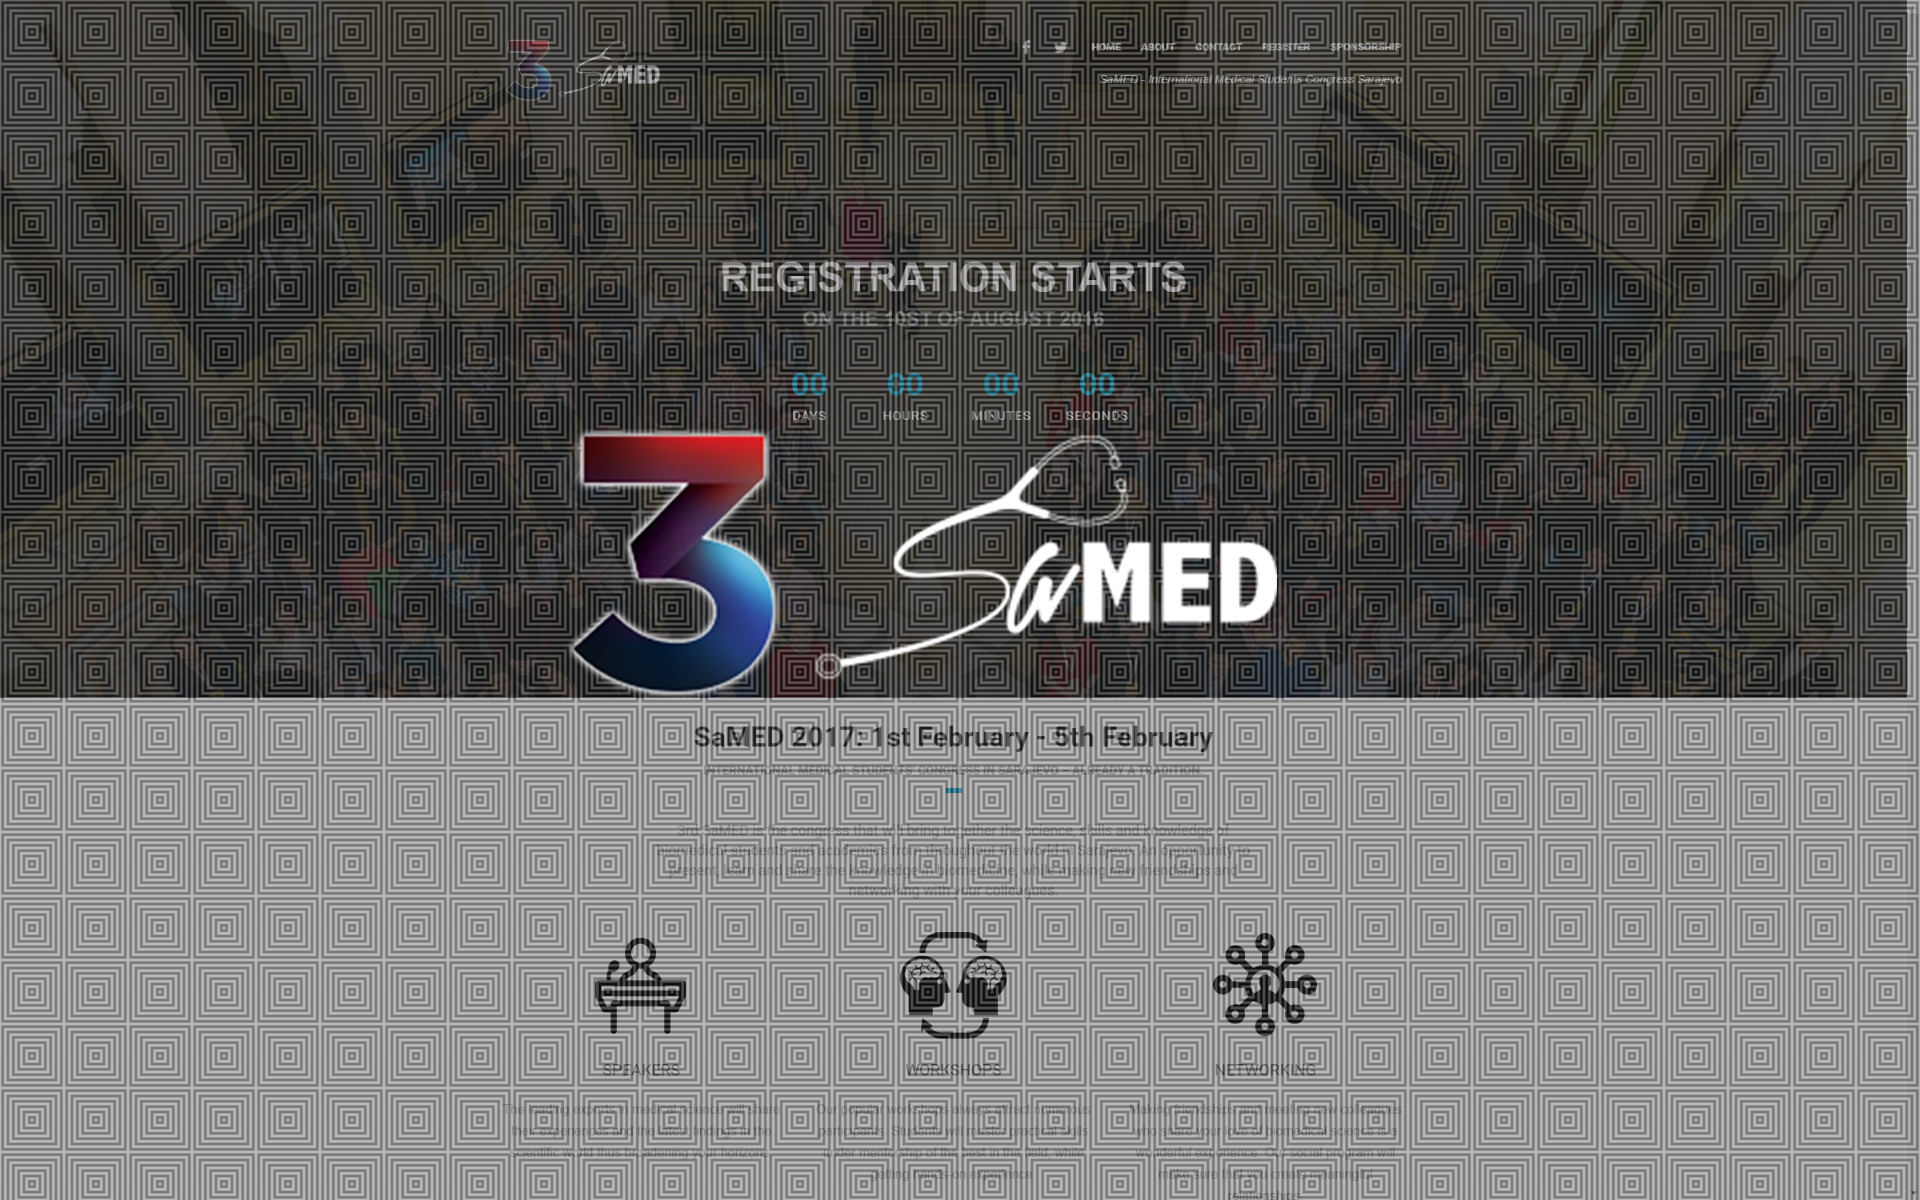 SAMED WEBSITE